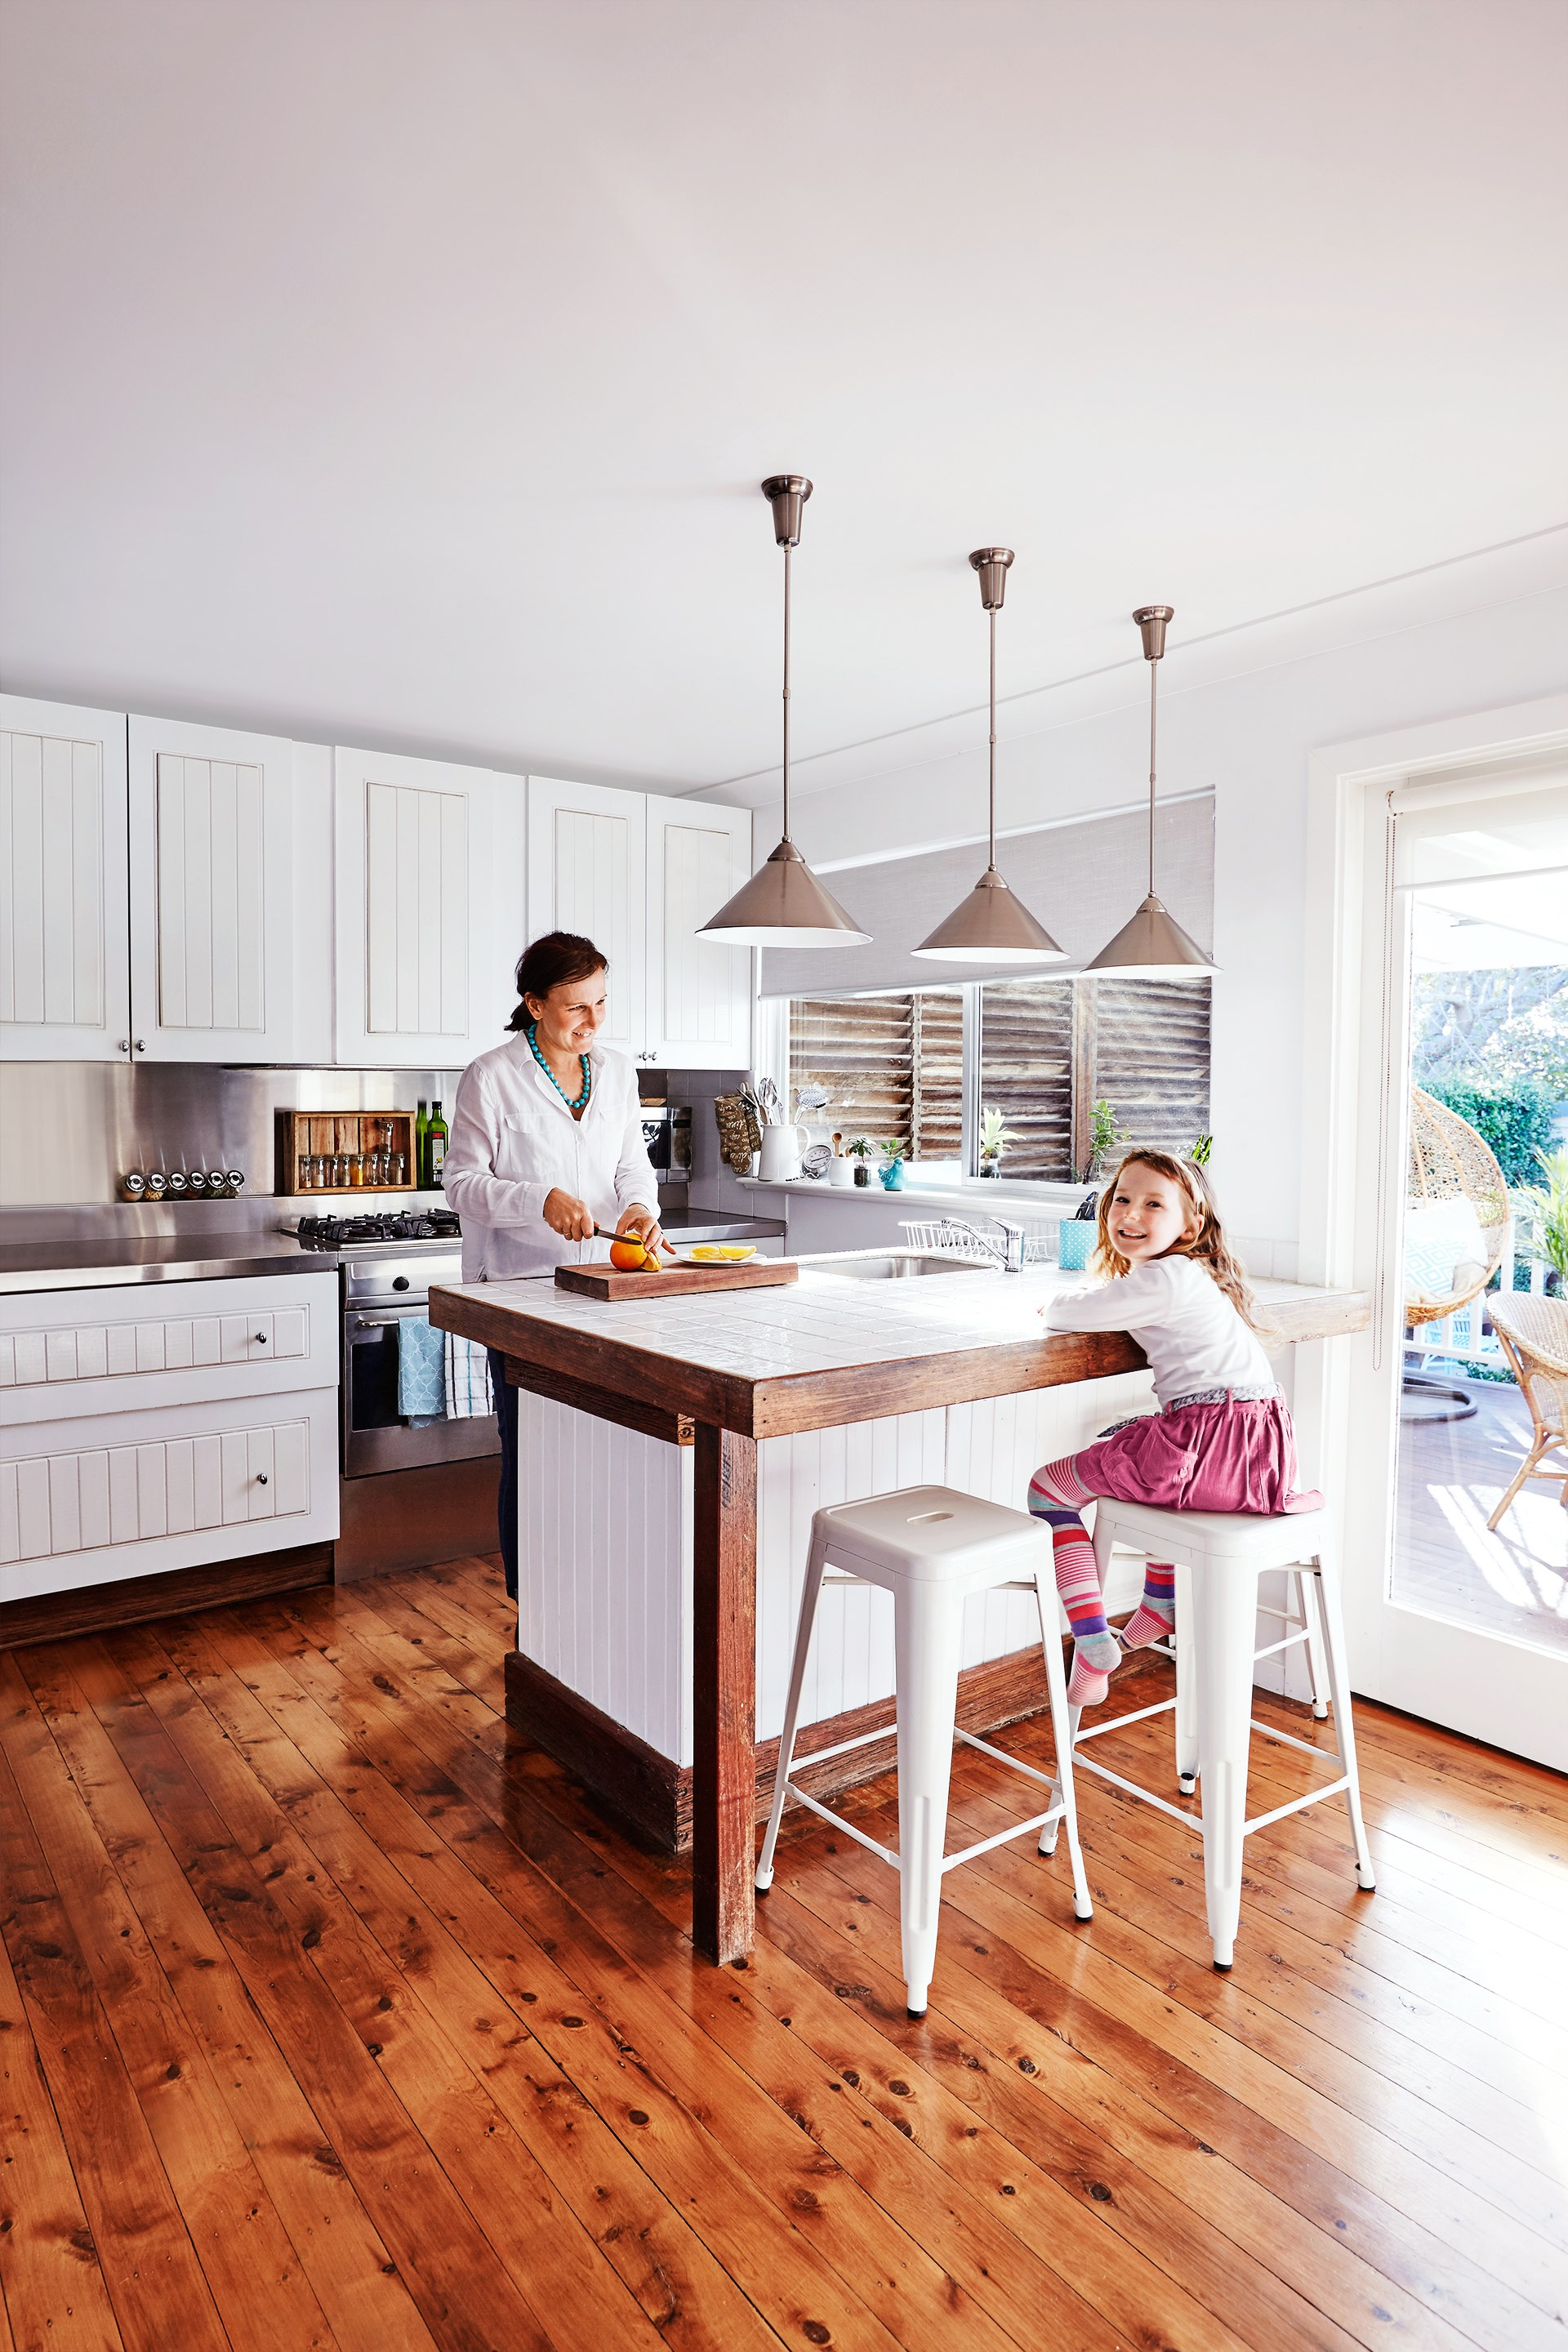 **Virginia Howell** This charming abode in Caves Beach, NSW, mixes rustic, coastal and country style seamlessly to create a welcoming, characterful home. [See the full home here](http://www.homestolove.com.au/modern-rustic-style-on-a-budget-4487) or [vote for this home](http://www.homestolove.com.au/homes-reader-home-of-the-year-4499).